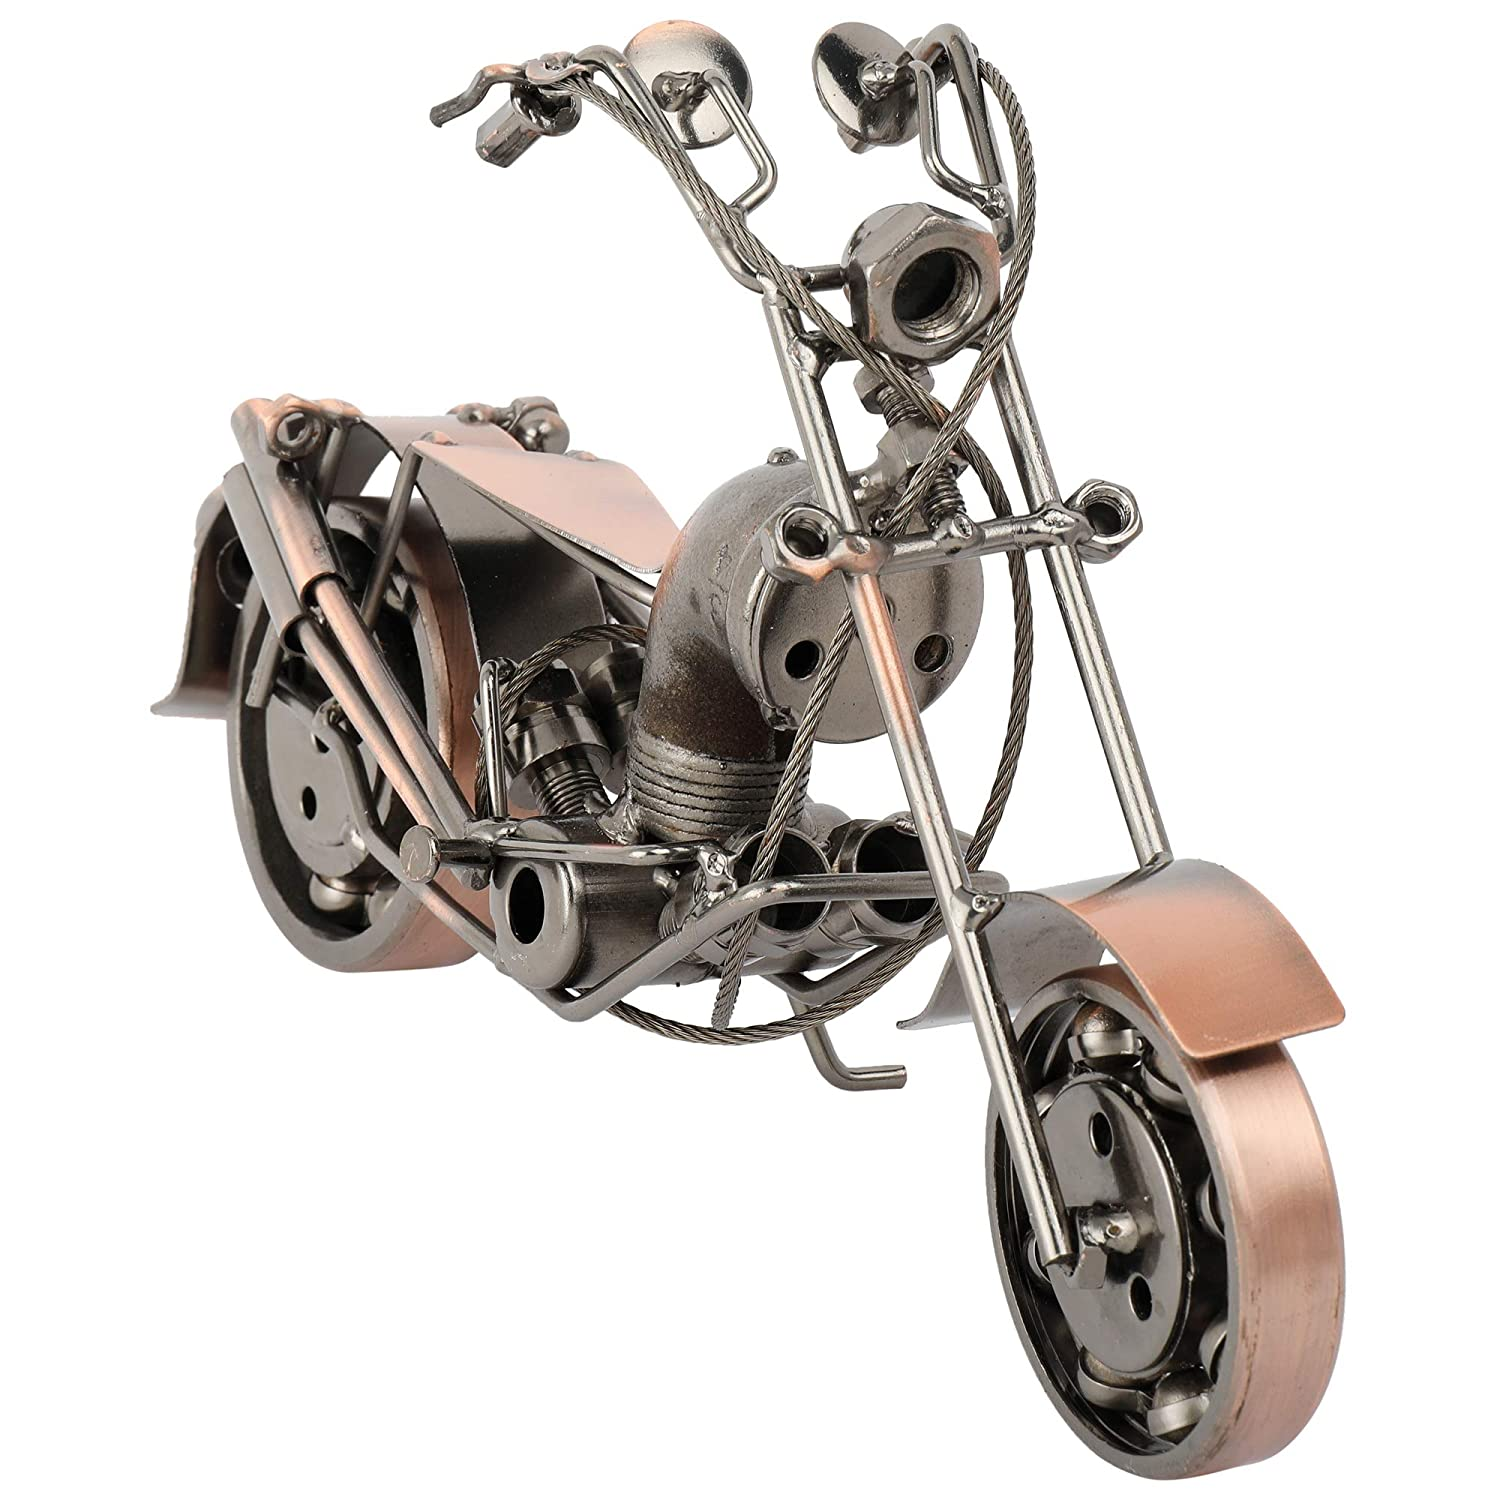 Vintage Handmade Chopper Bike Metal Sculpture Collectible Motorcycle Model Art